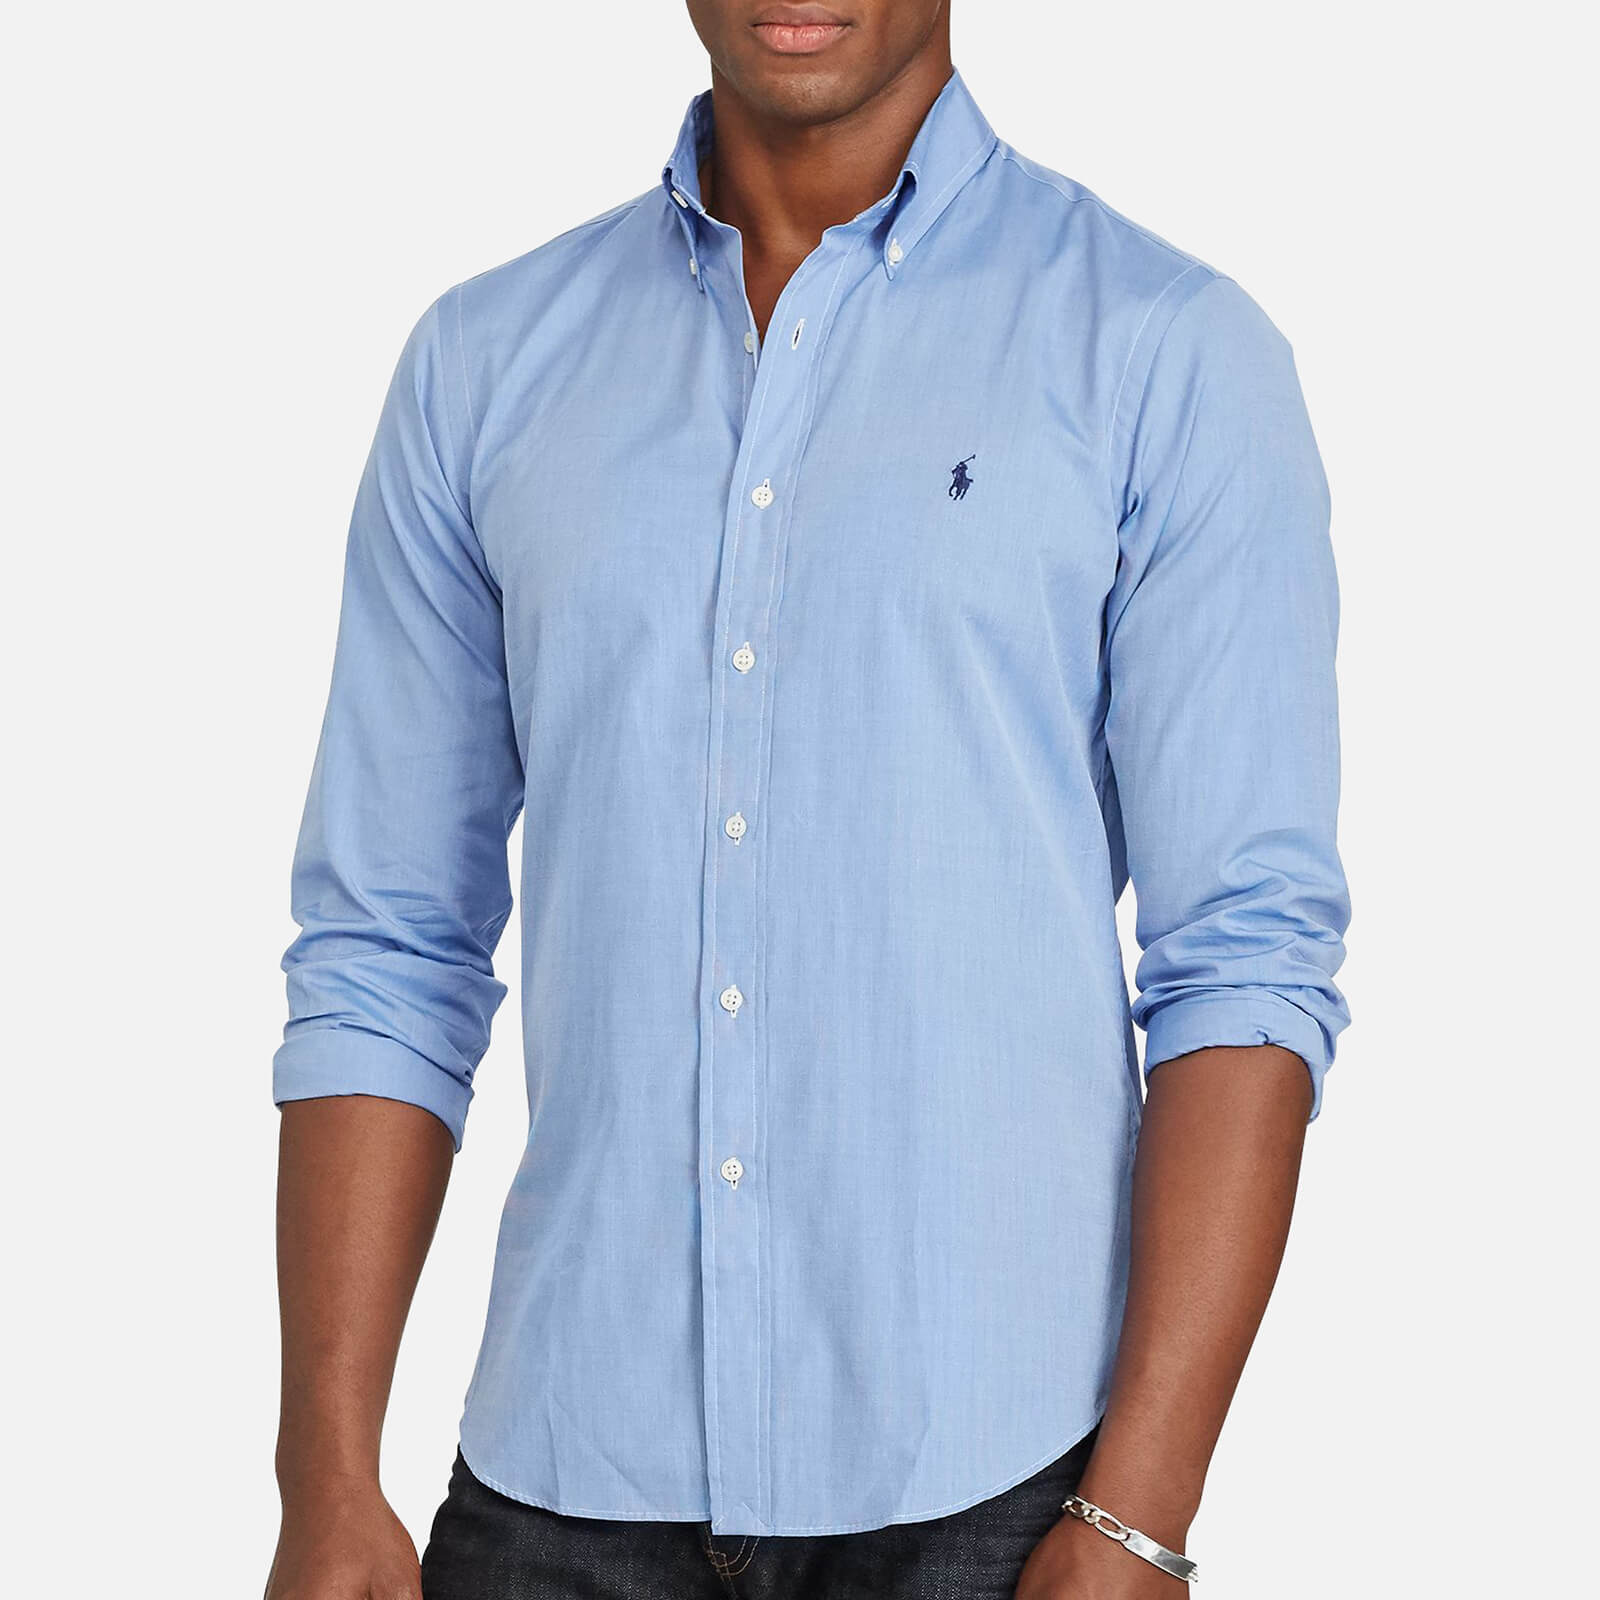 46504e915 Polo Ralph Lauren Men s Cotton Poplin Slim Long Sleeve Shirt - Medium Blue  White - Free UK Delivery over £50